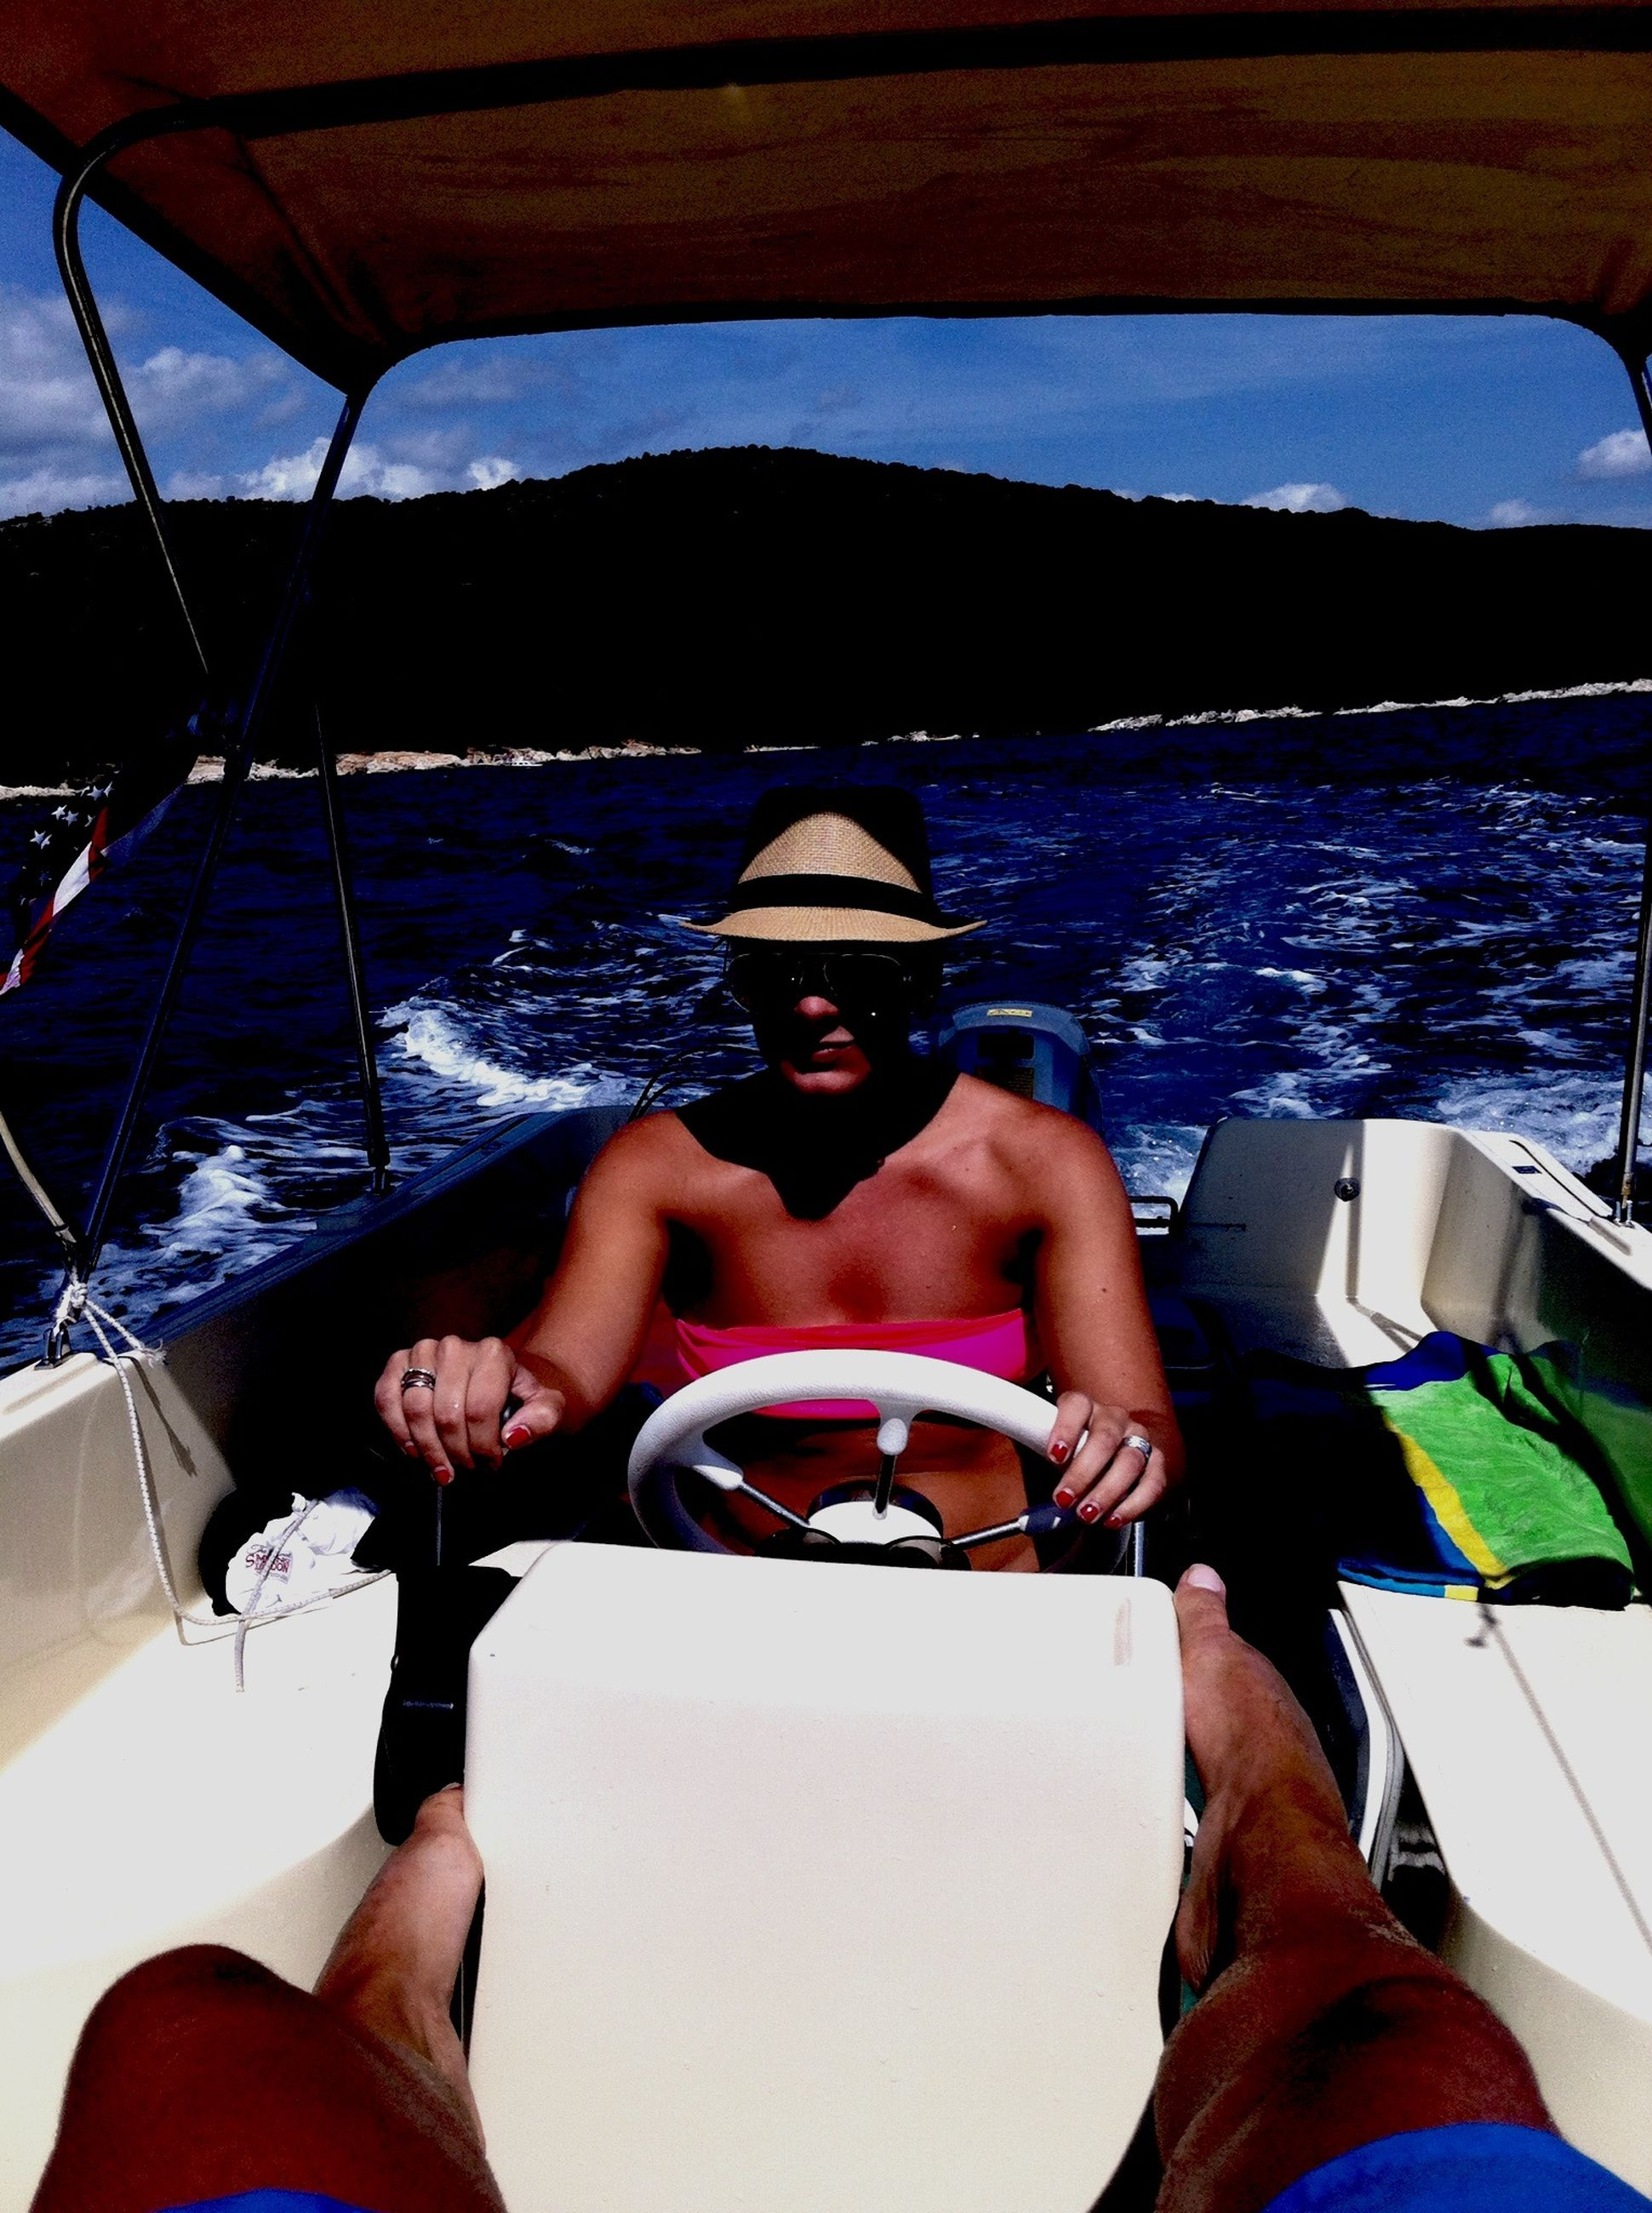 lifestyles, leisure activity, transportation, mode of transport, water, sitting, nautical vessel, sea, vehicle interior, boat, sunglasses, travel, part of, young adult, relaxation, men, vacations, personal perspective